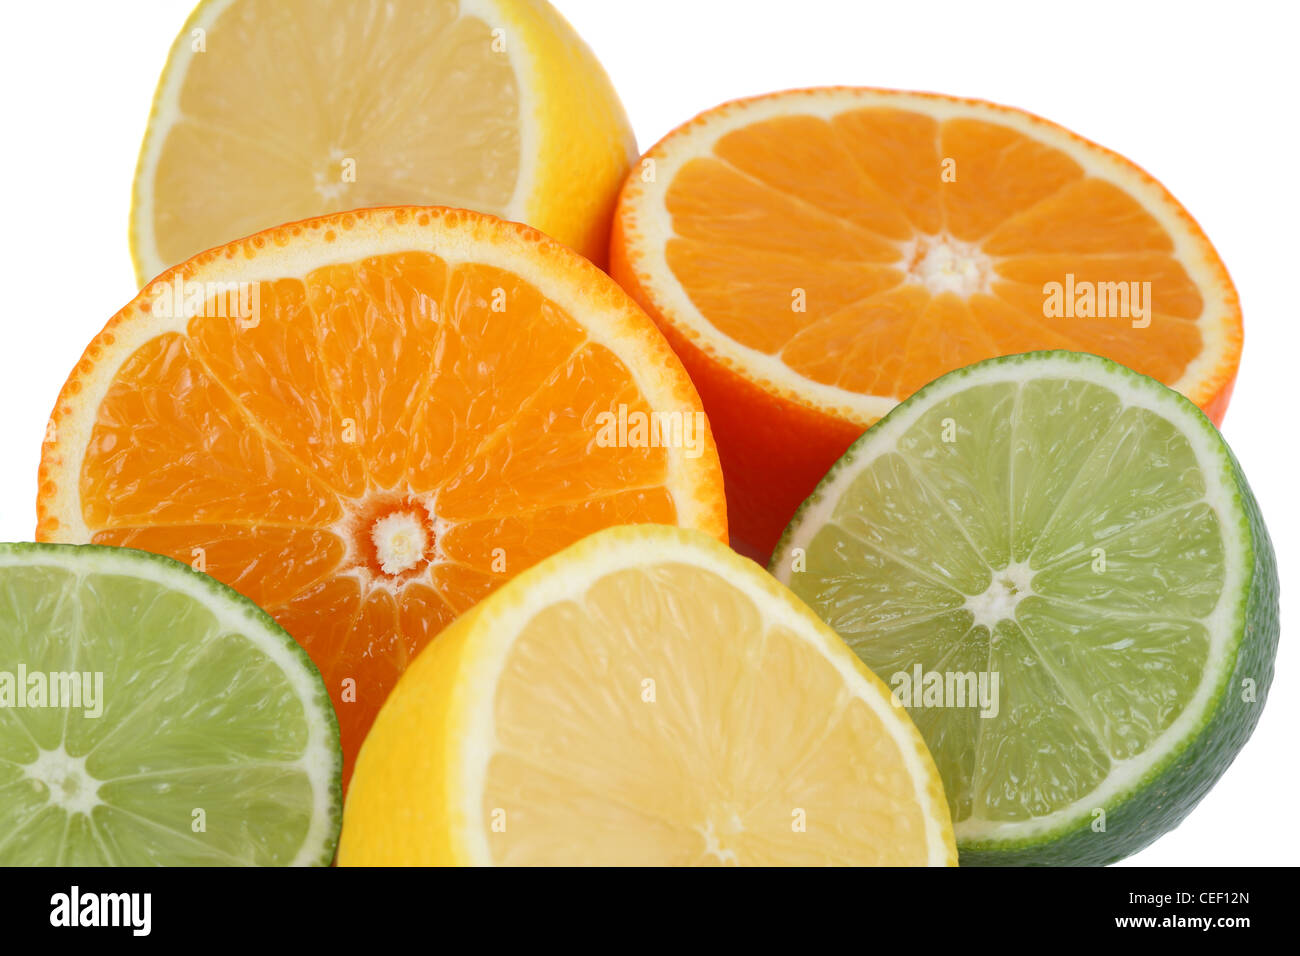 Oranges, lemons, limes, citrus fruits as a background on white - Stock Image